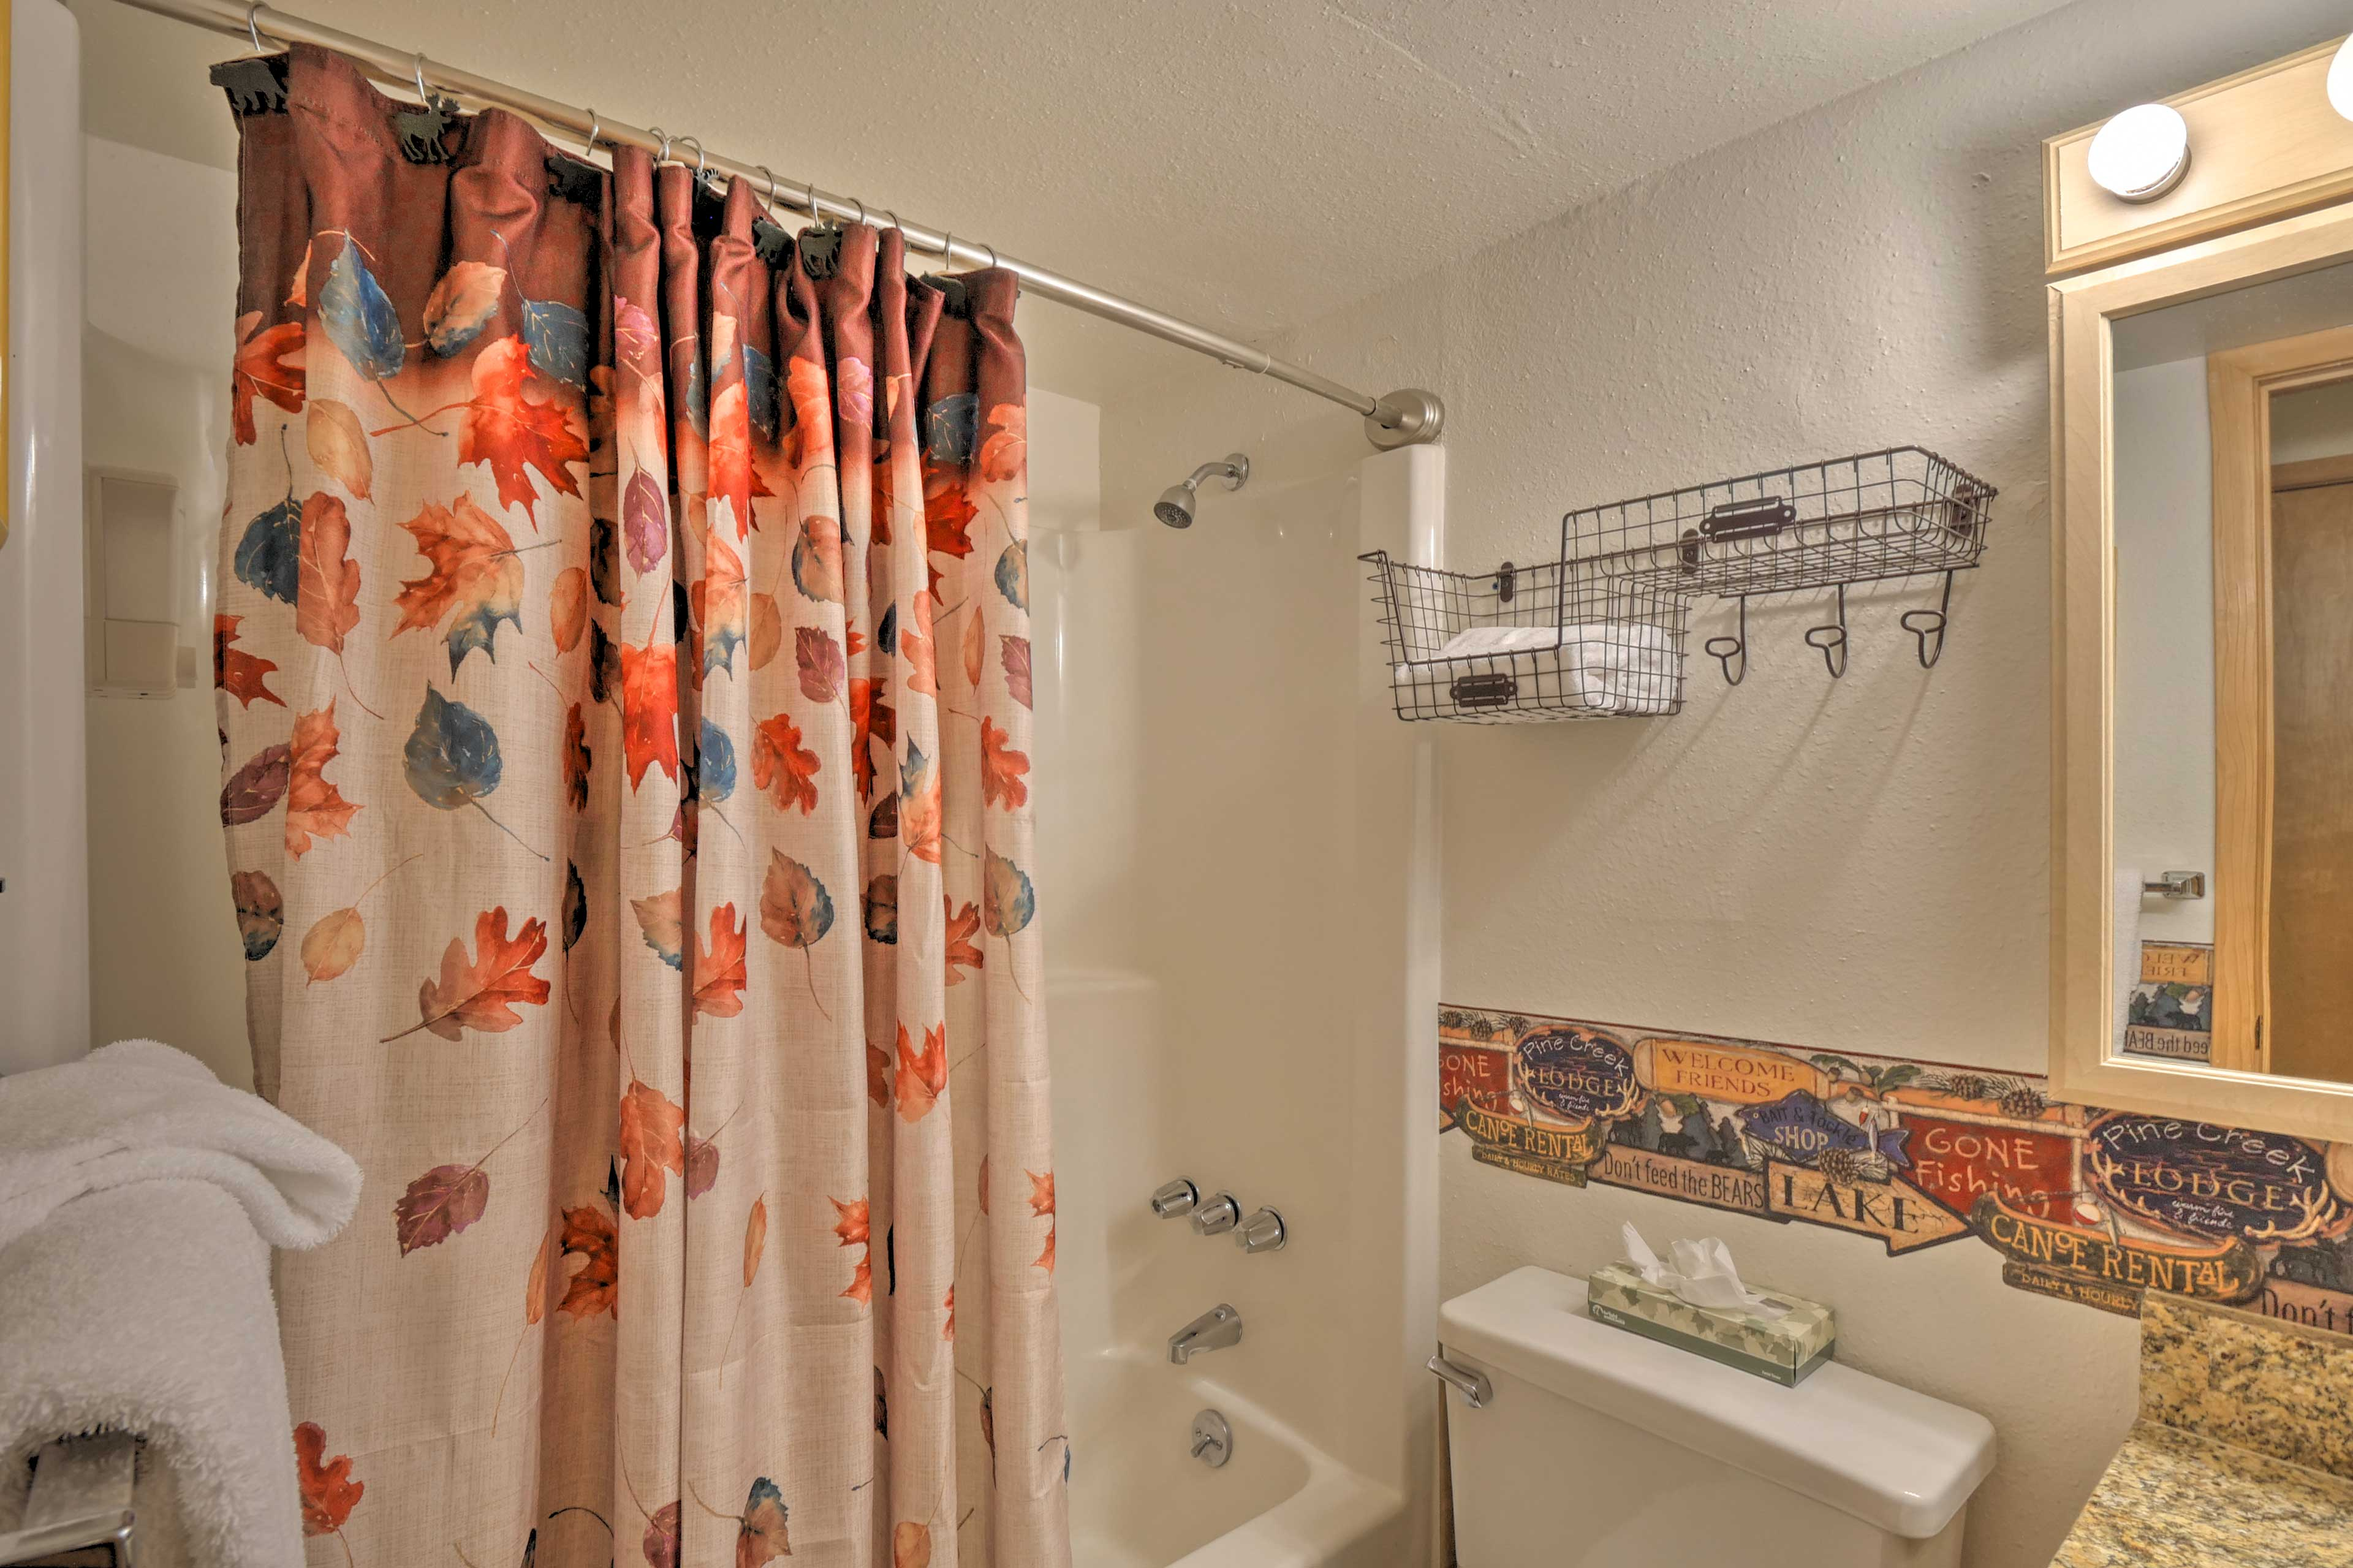 The first full bathroom has a shower/tub combo.